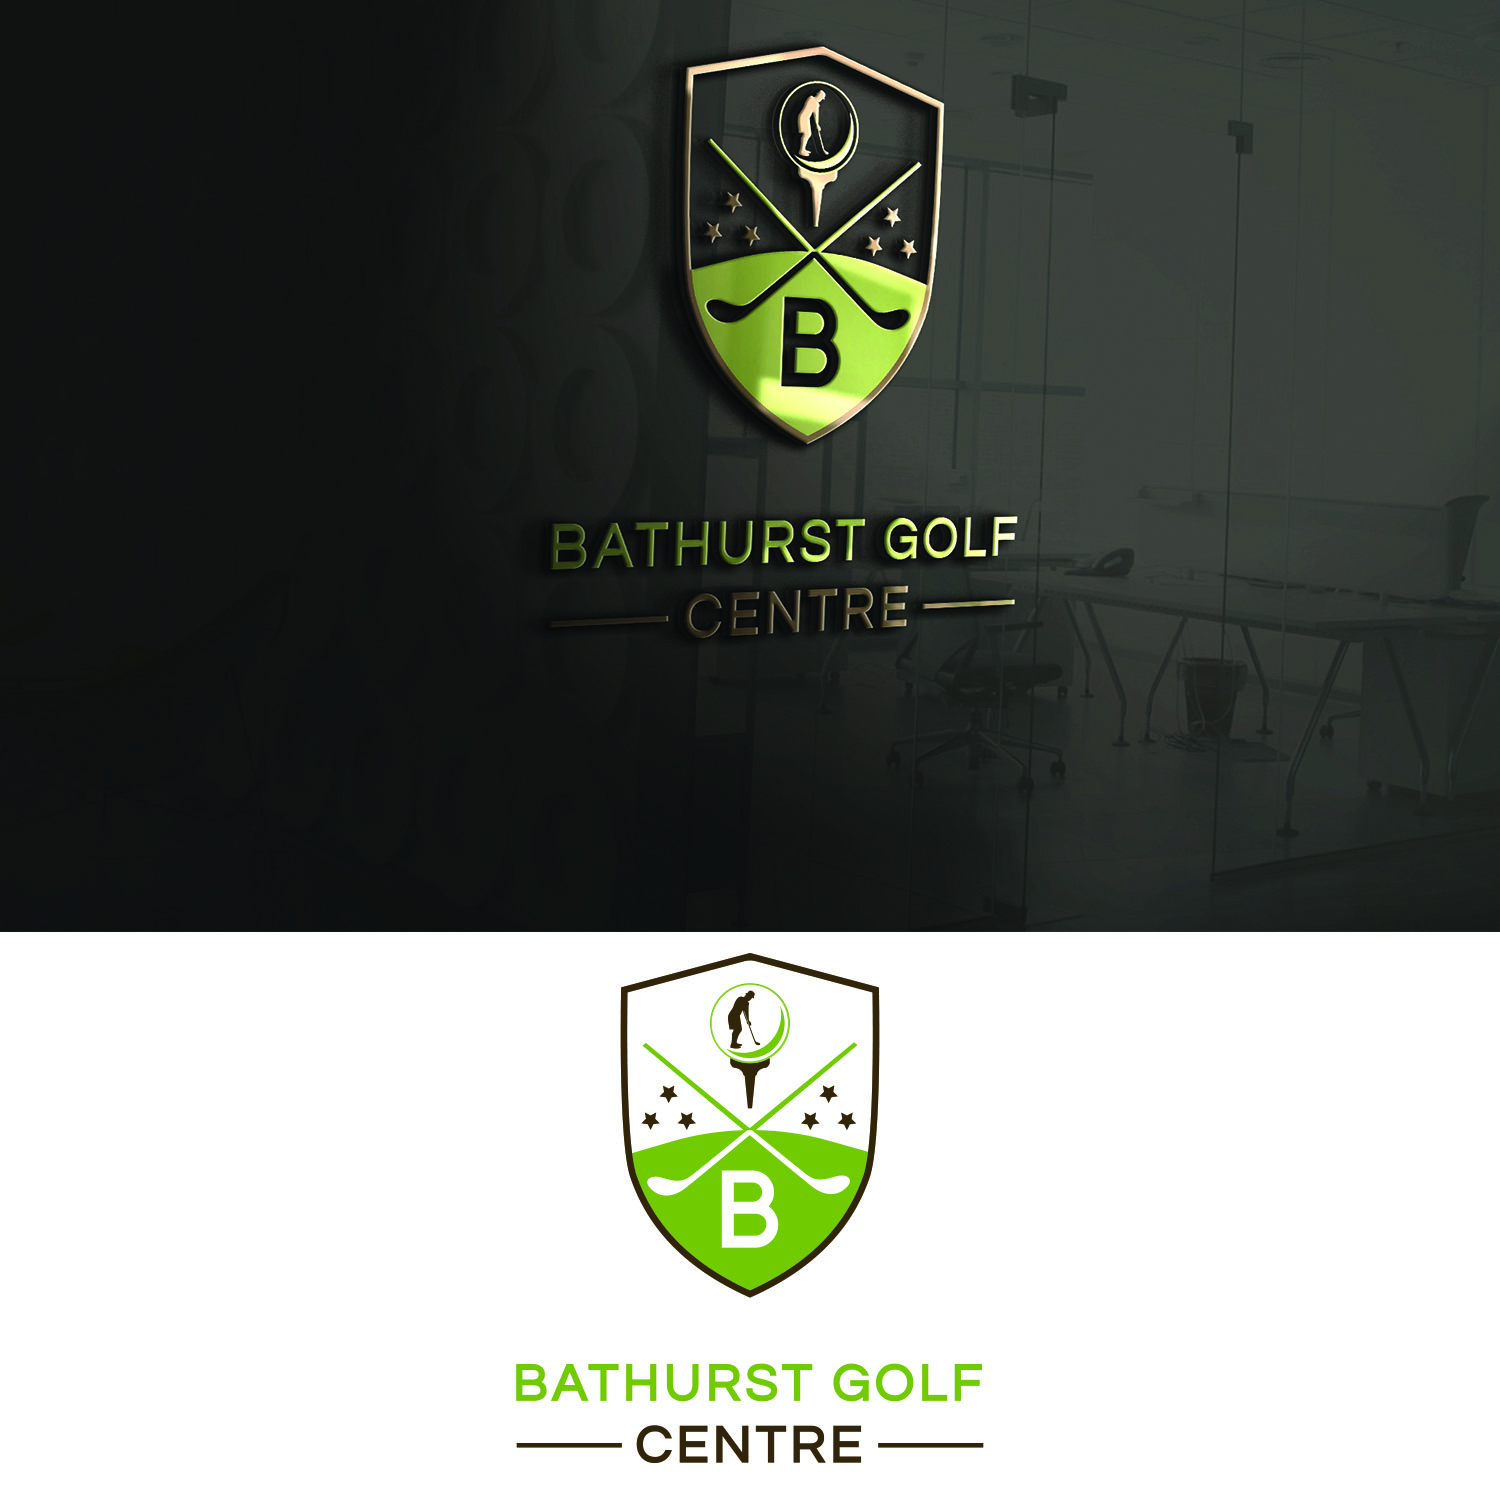 Logo Design by Umair ahmed Iqbal - Entry No. 44 in the Logo Design Contest Inspiring Logo Design for Bathurst Golf Centre.